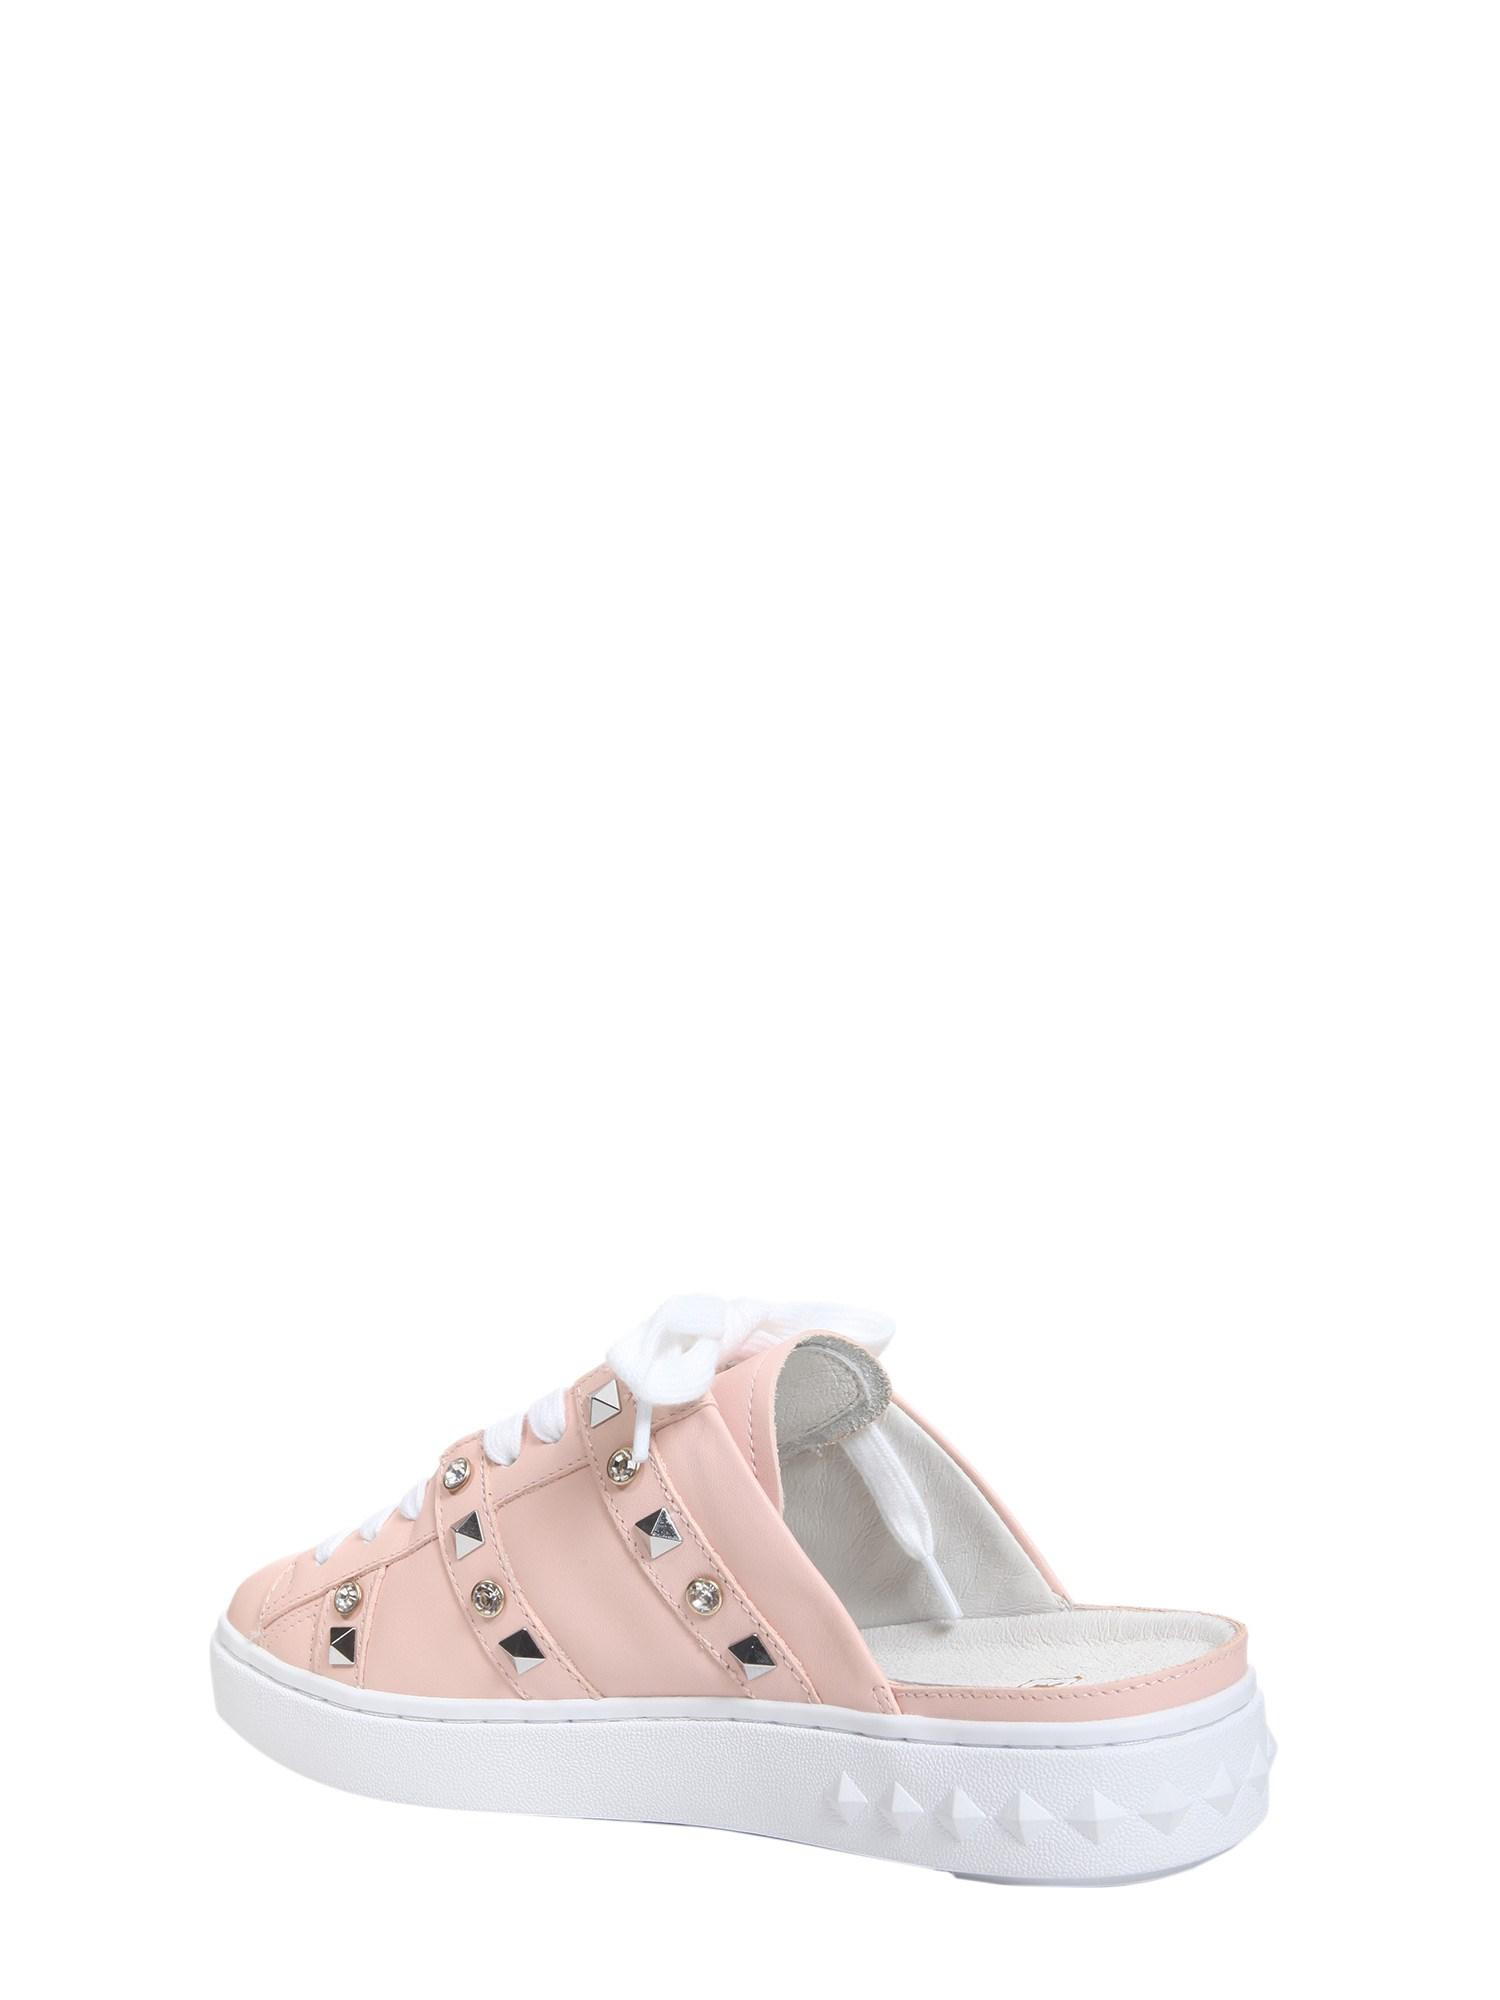 Ash Party Slip-on Leather Sneakers in Pink - Save 50% - Lyst 4ff31f0c1